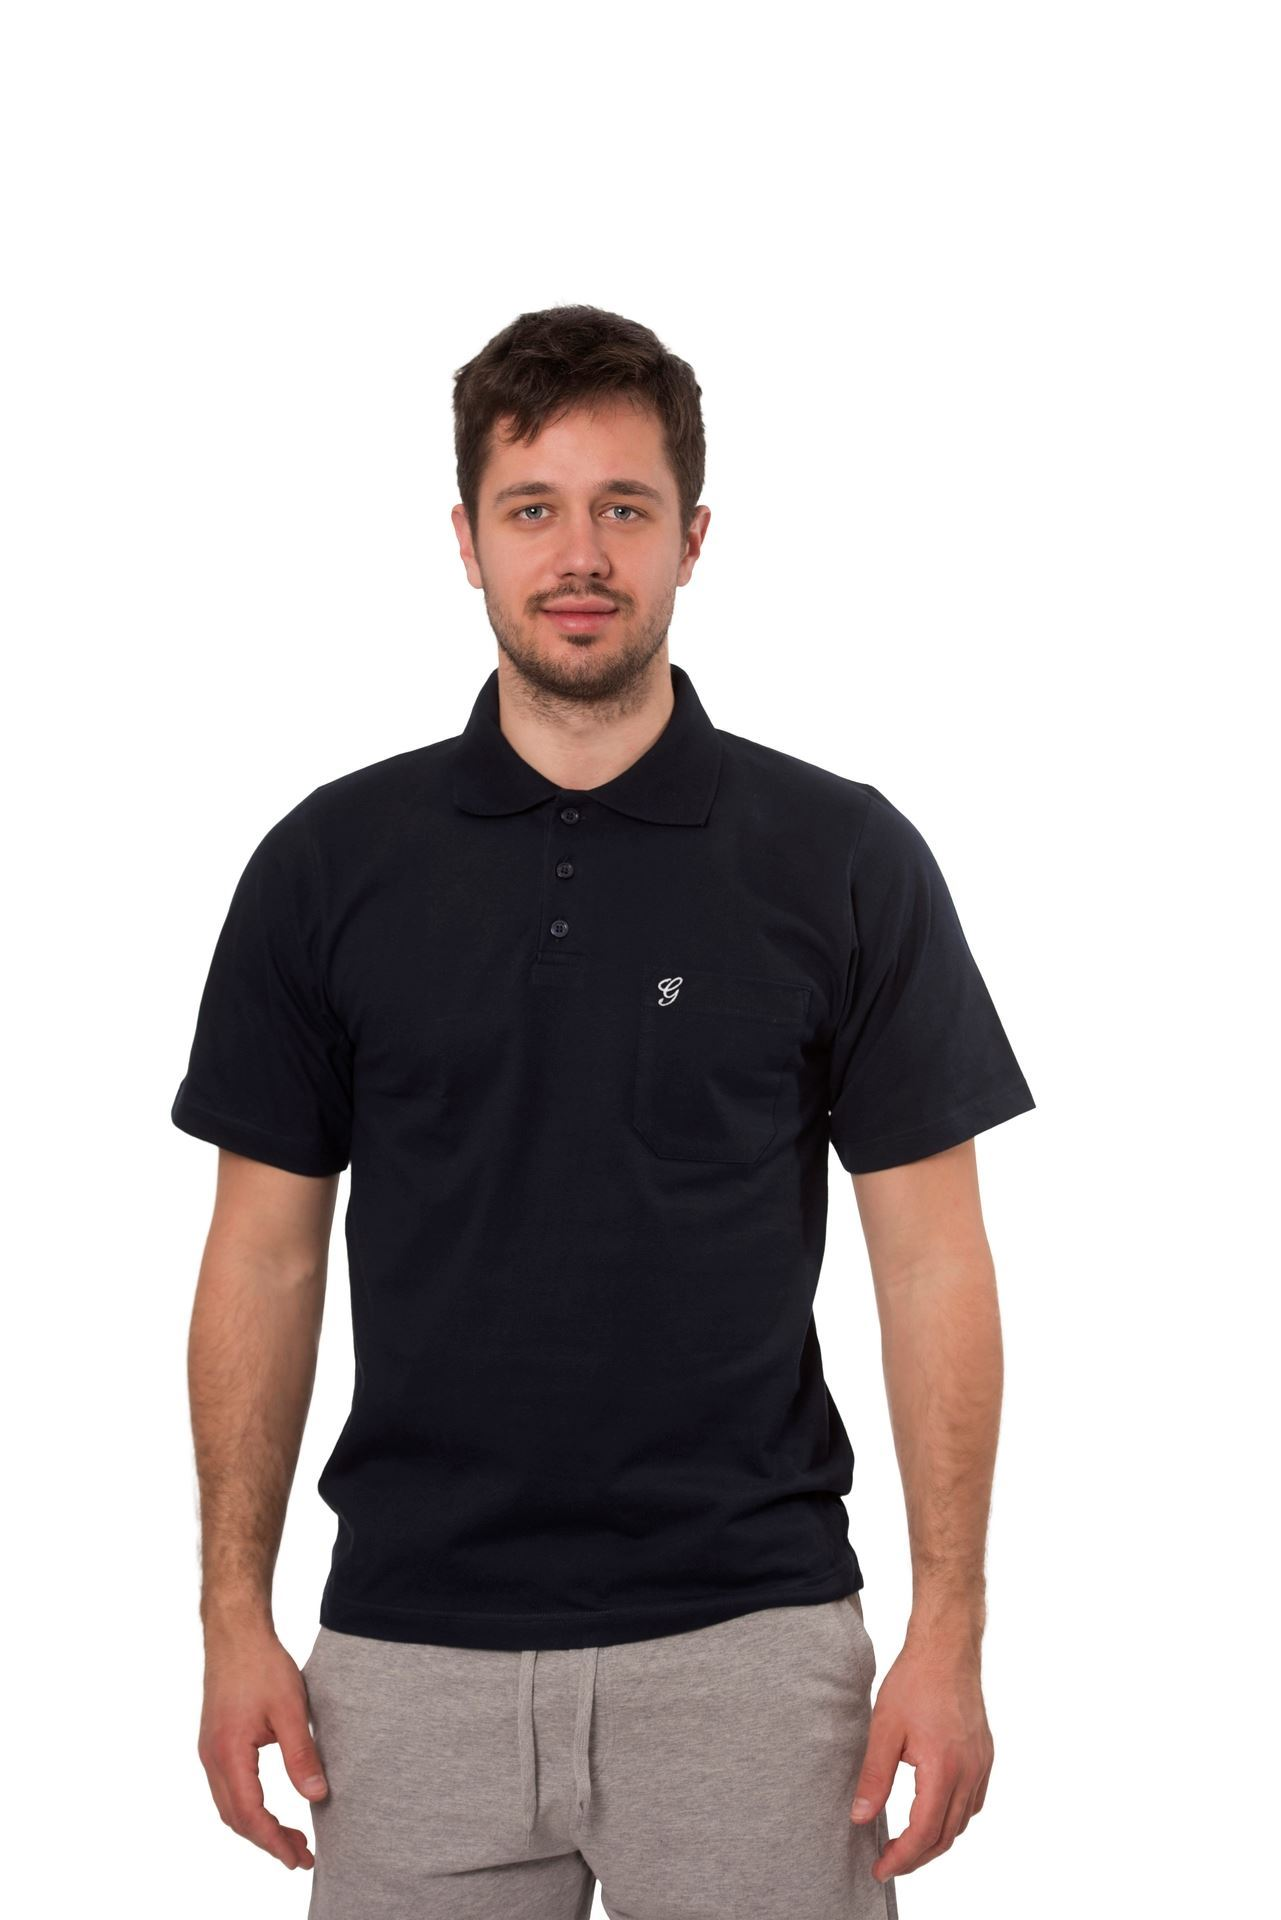 Picture of Men's short sleeves shirt-Outlet